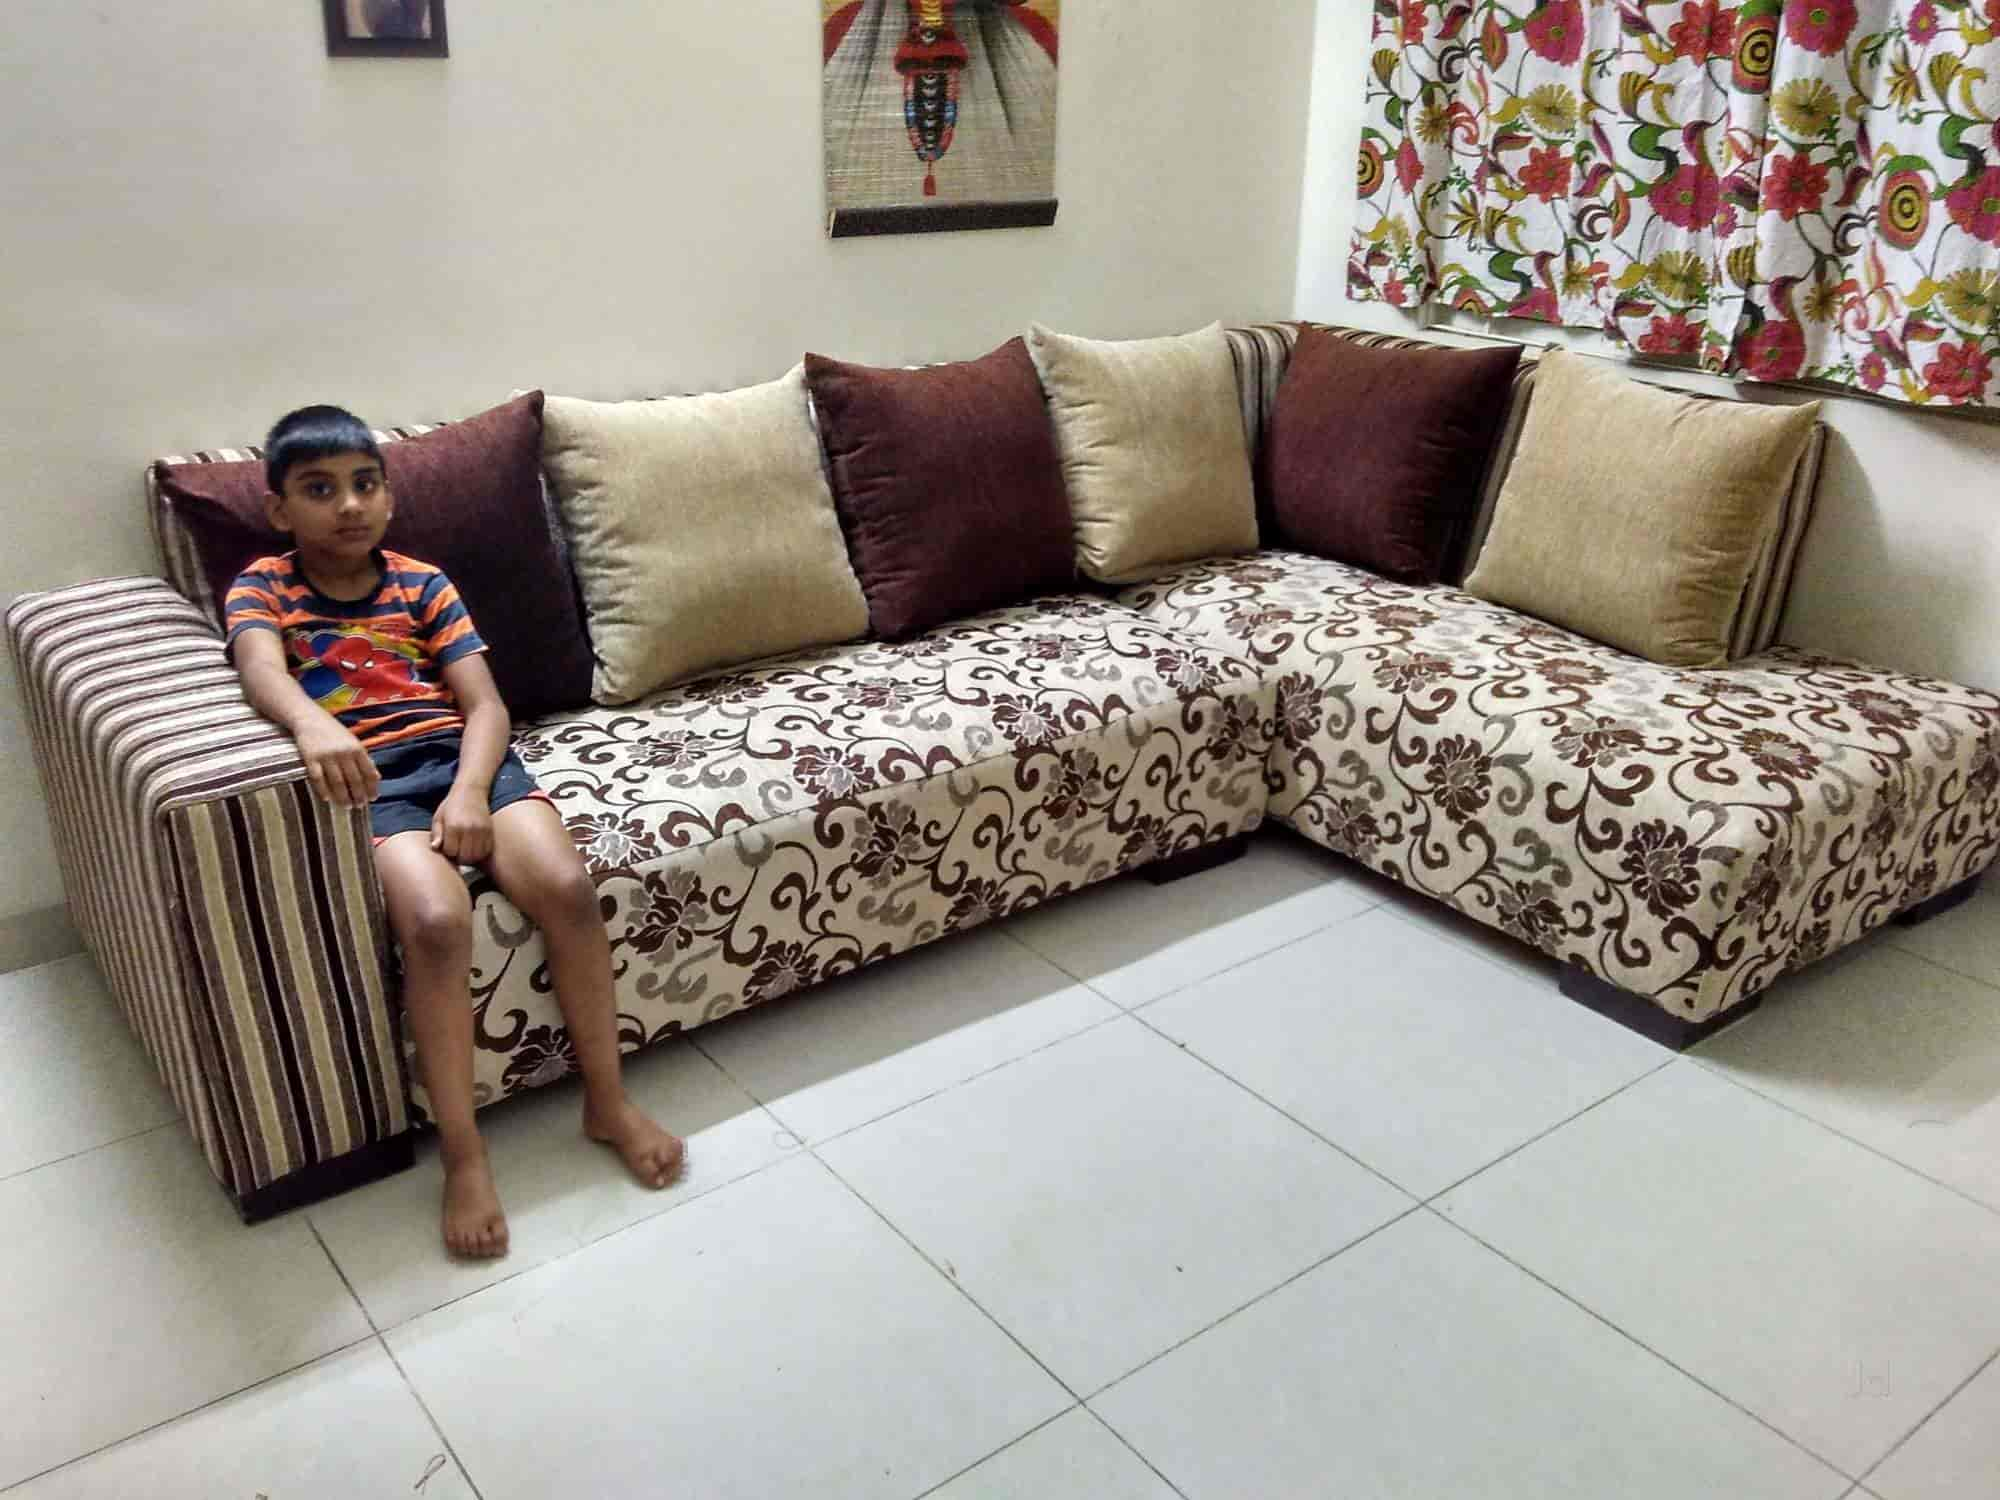 teak sofa sets hyderabad rv sleeper with air mattress second hand set in olx review home co